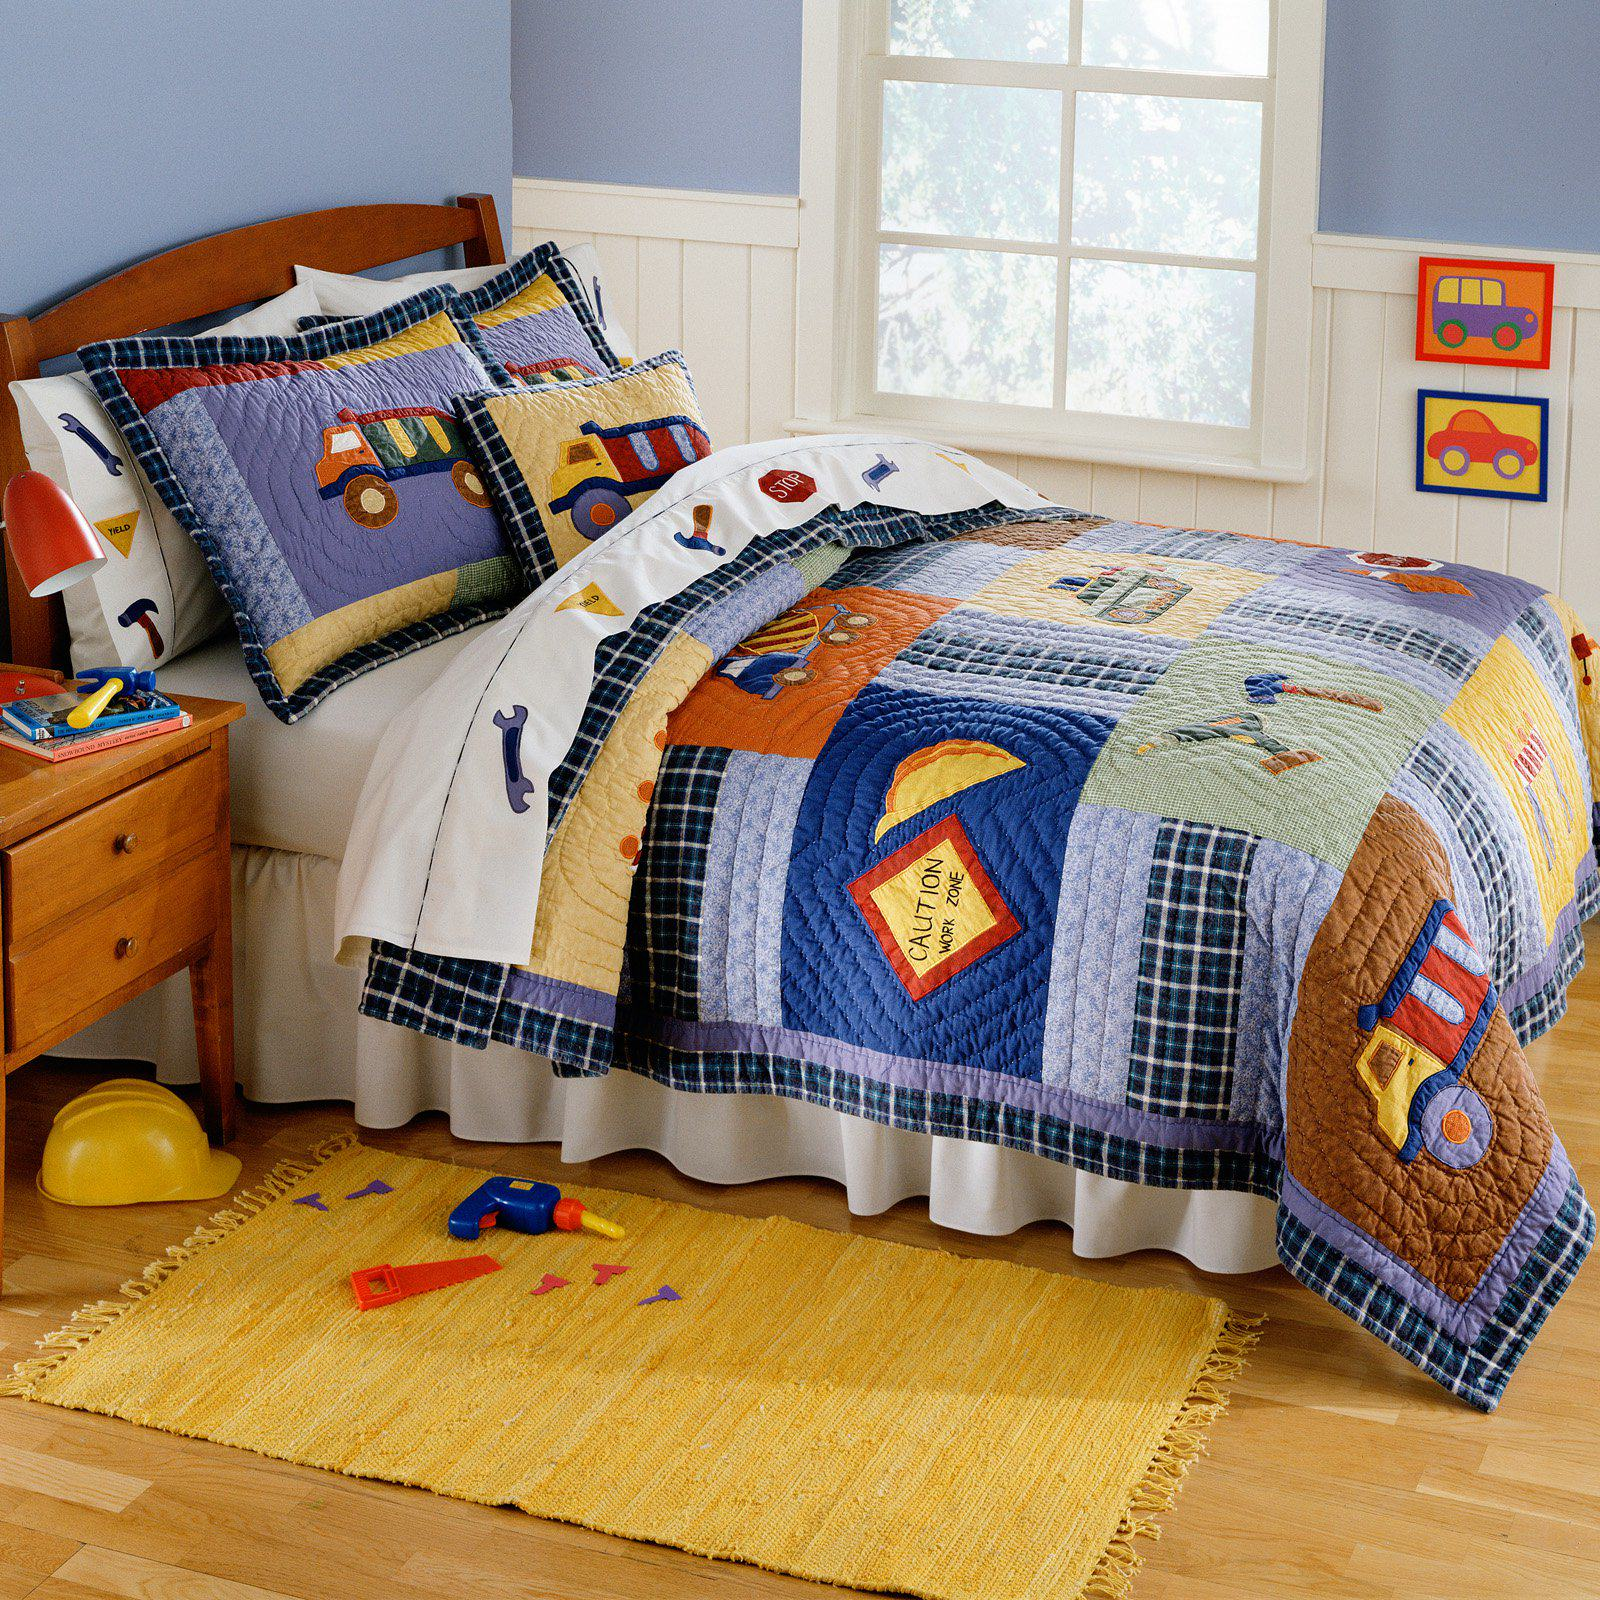 Boys bedroom ideas for Kid room decor